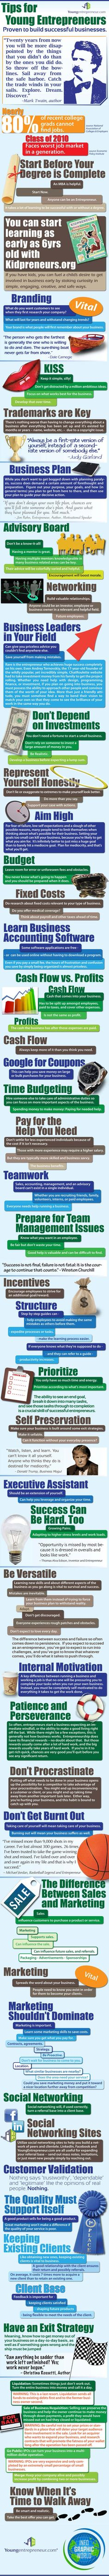 Some tips for young entrepreneurs on how to build a successful business. #entrepreneurship